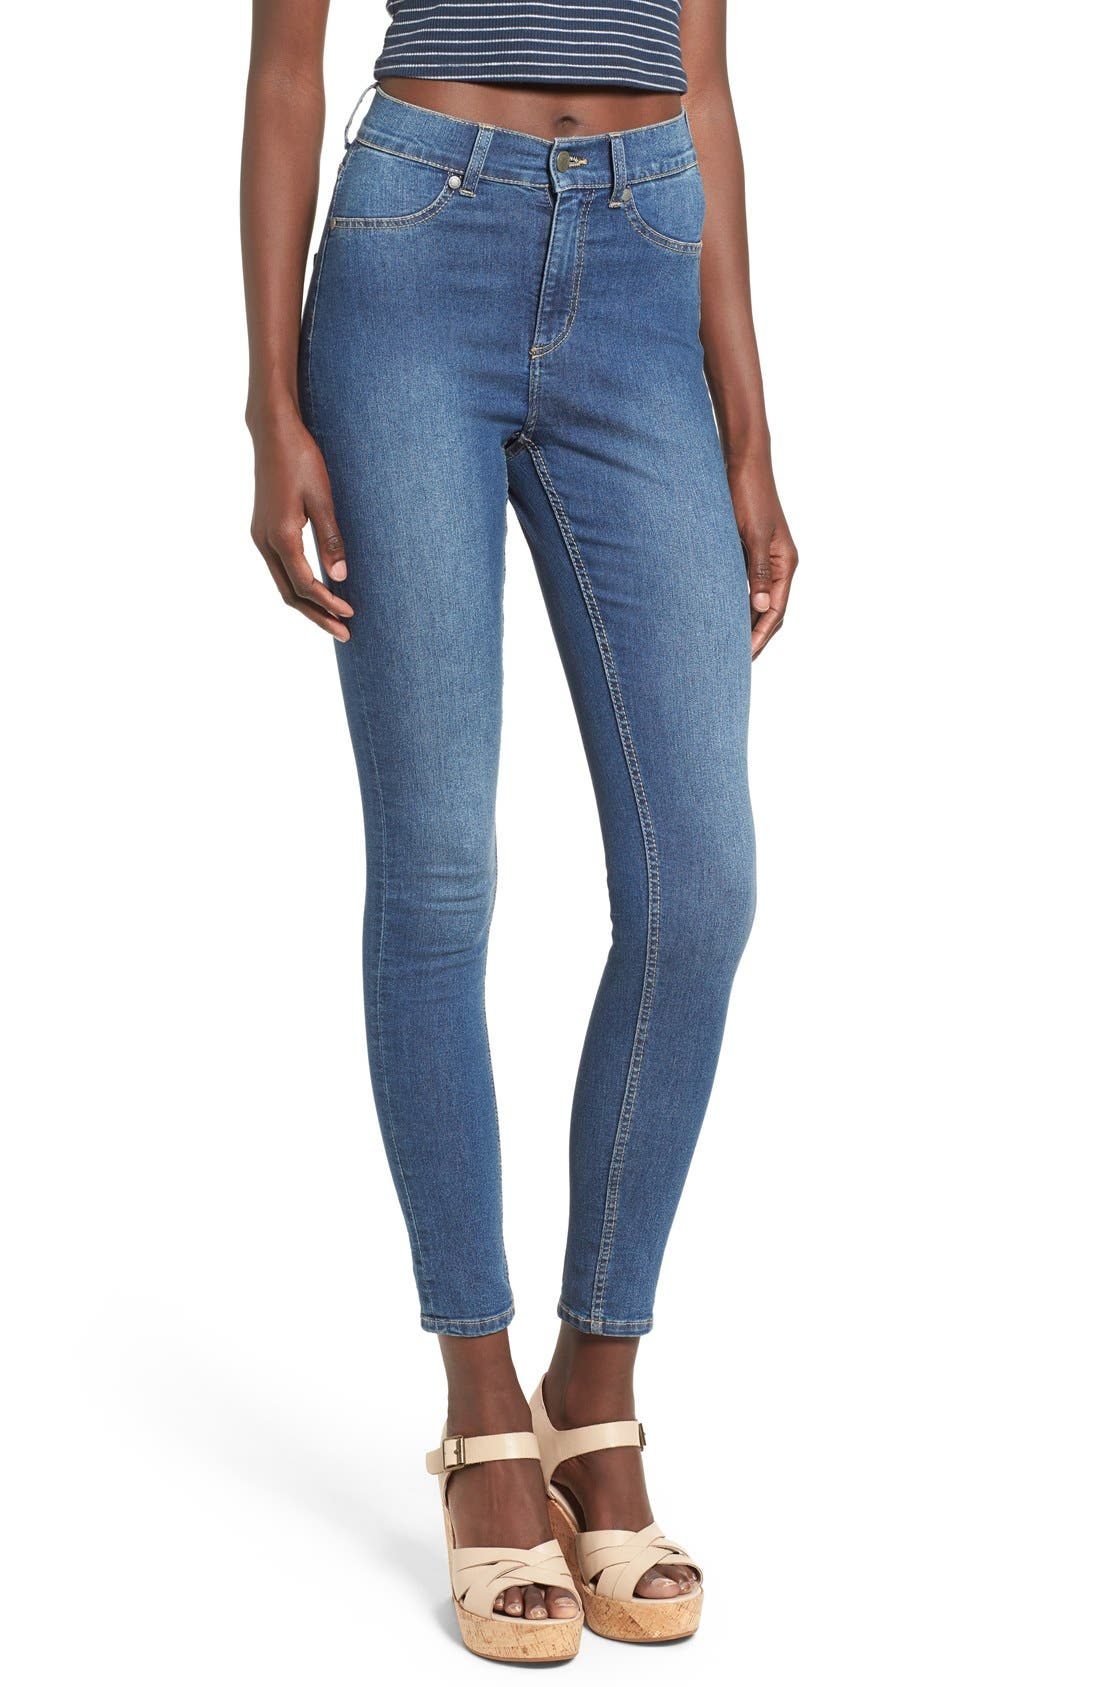 Main Image - Cheap Monday 'High Spray' High Rise Skinny Jeans